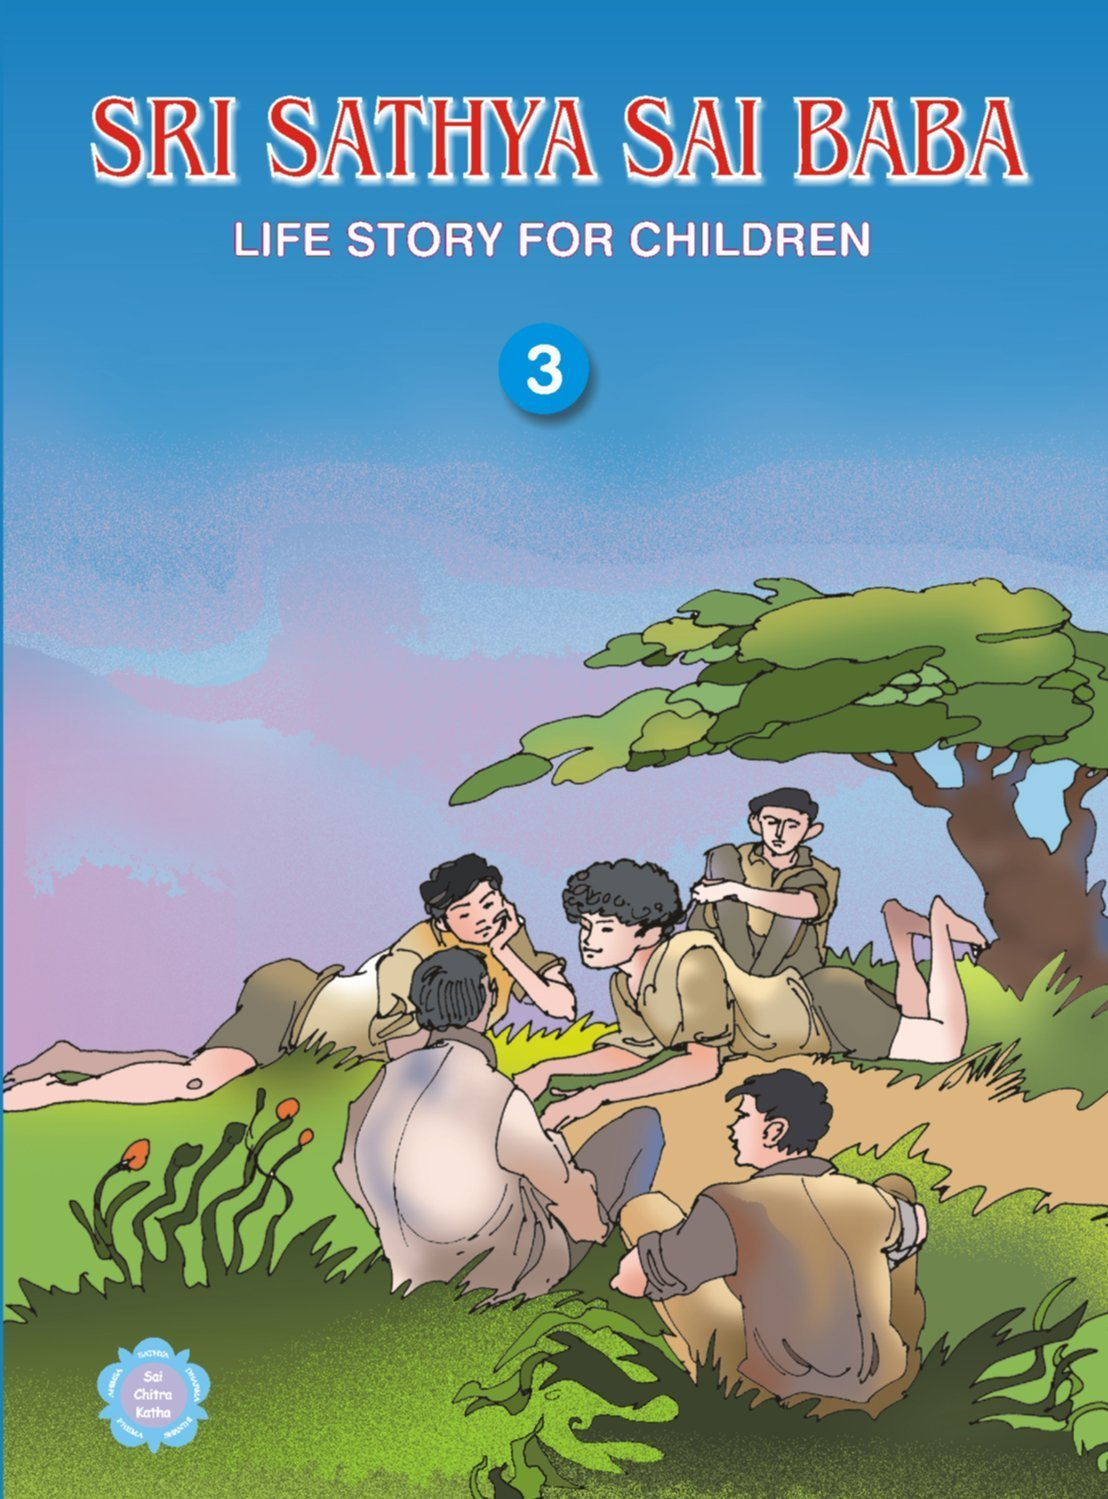 Sri Sathya Sai Baba 3 Life Story For Children R Padmanaban